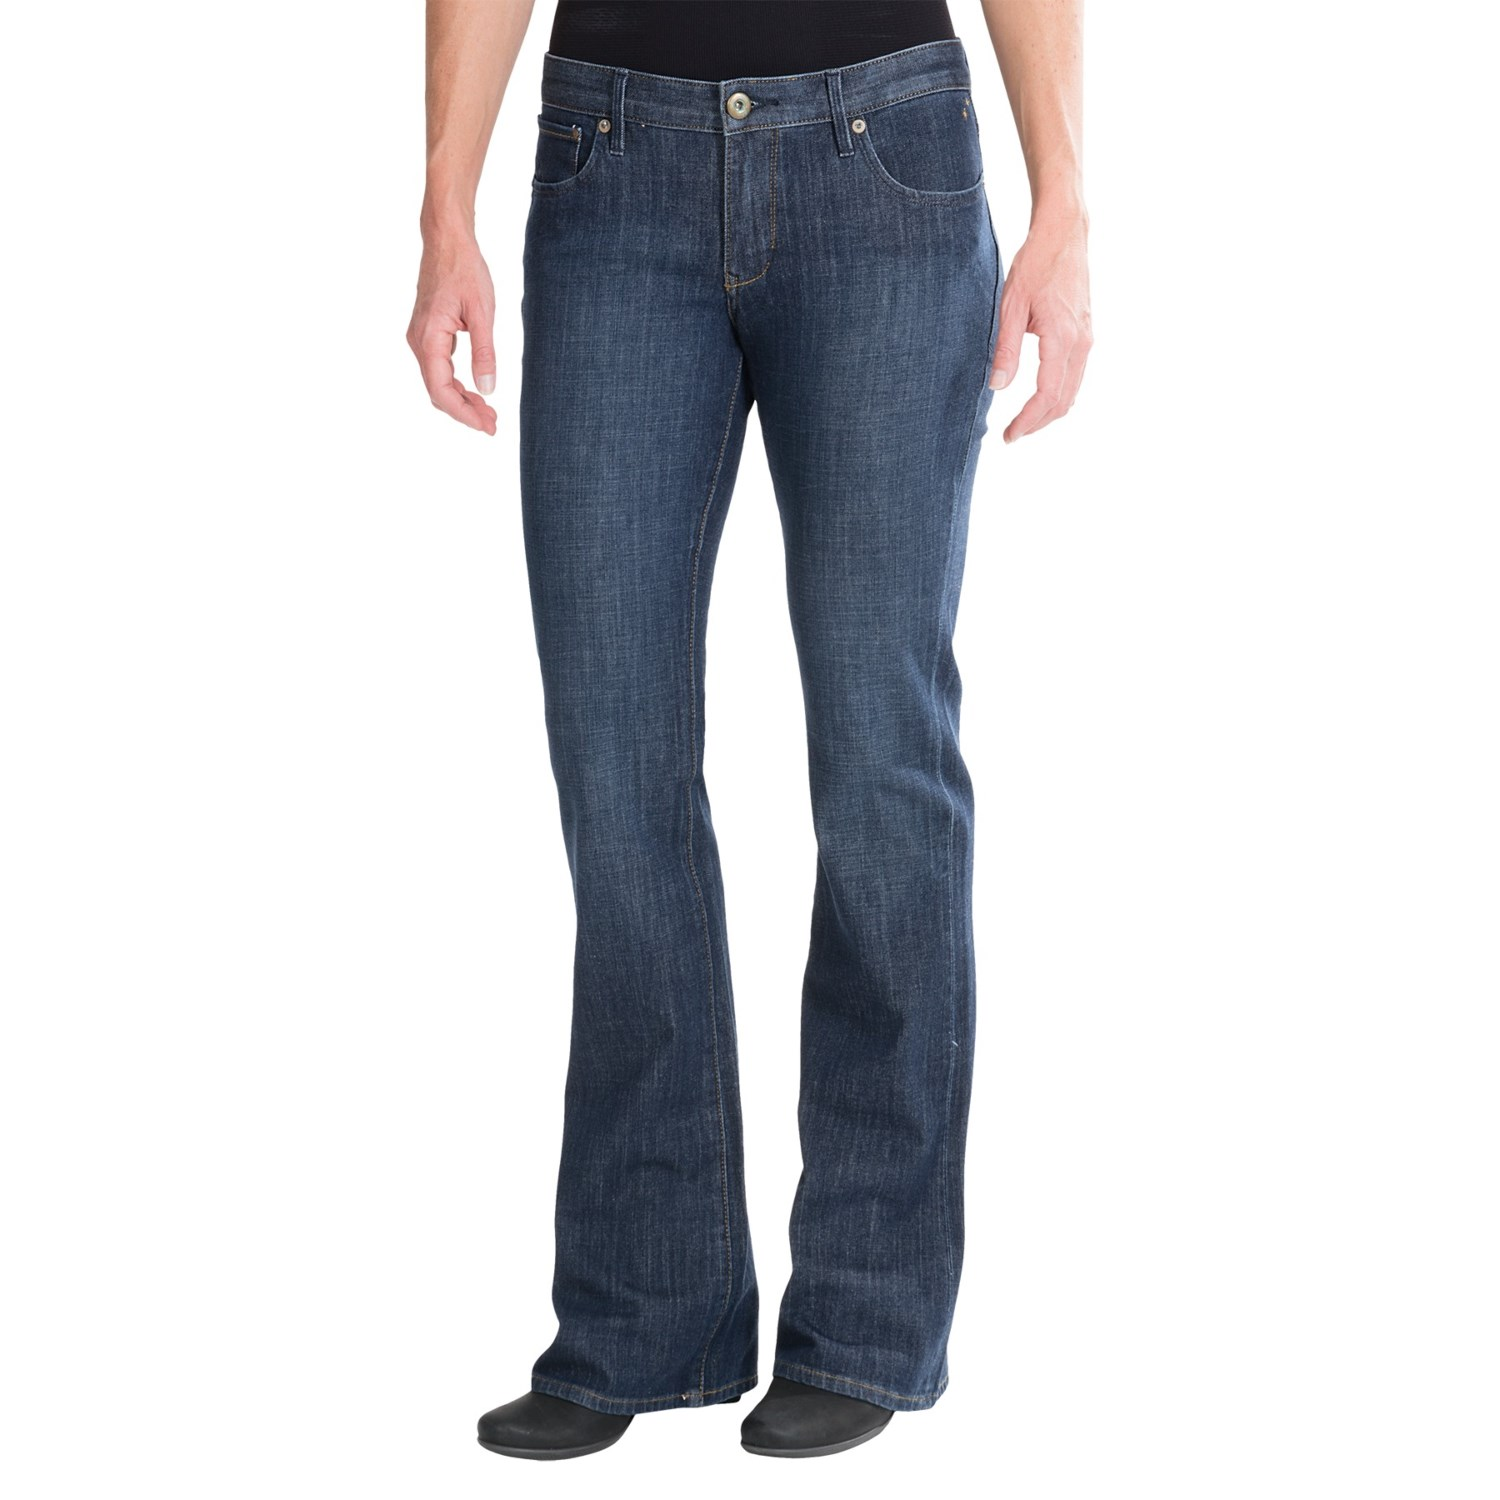 Women's Flare Jeans. Flare jeans from Buckle come in the latest fabrics and washes, offering both comfort and style. Women's flare leg jeans from top brands like BKE, Buckle Black, Daytrip and Flying Monkey are available both in-store and online.